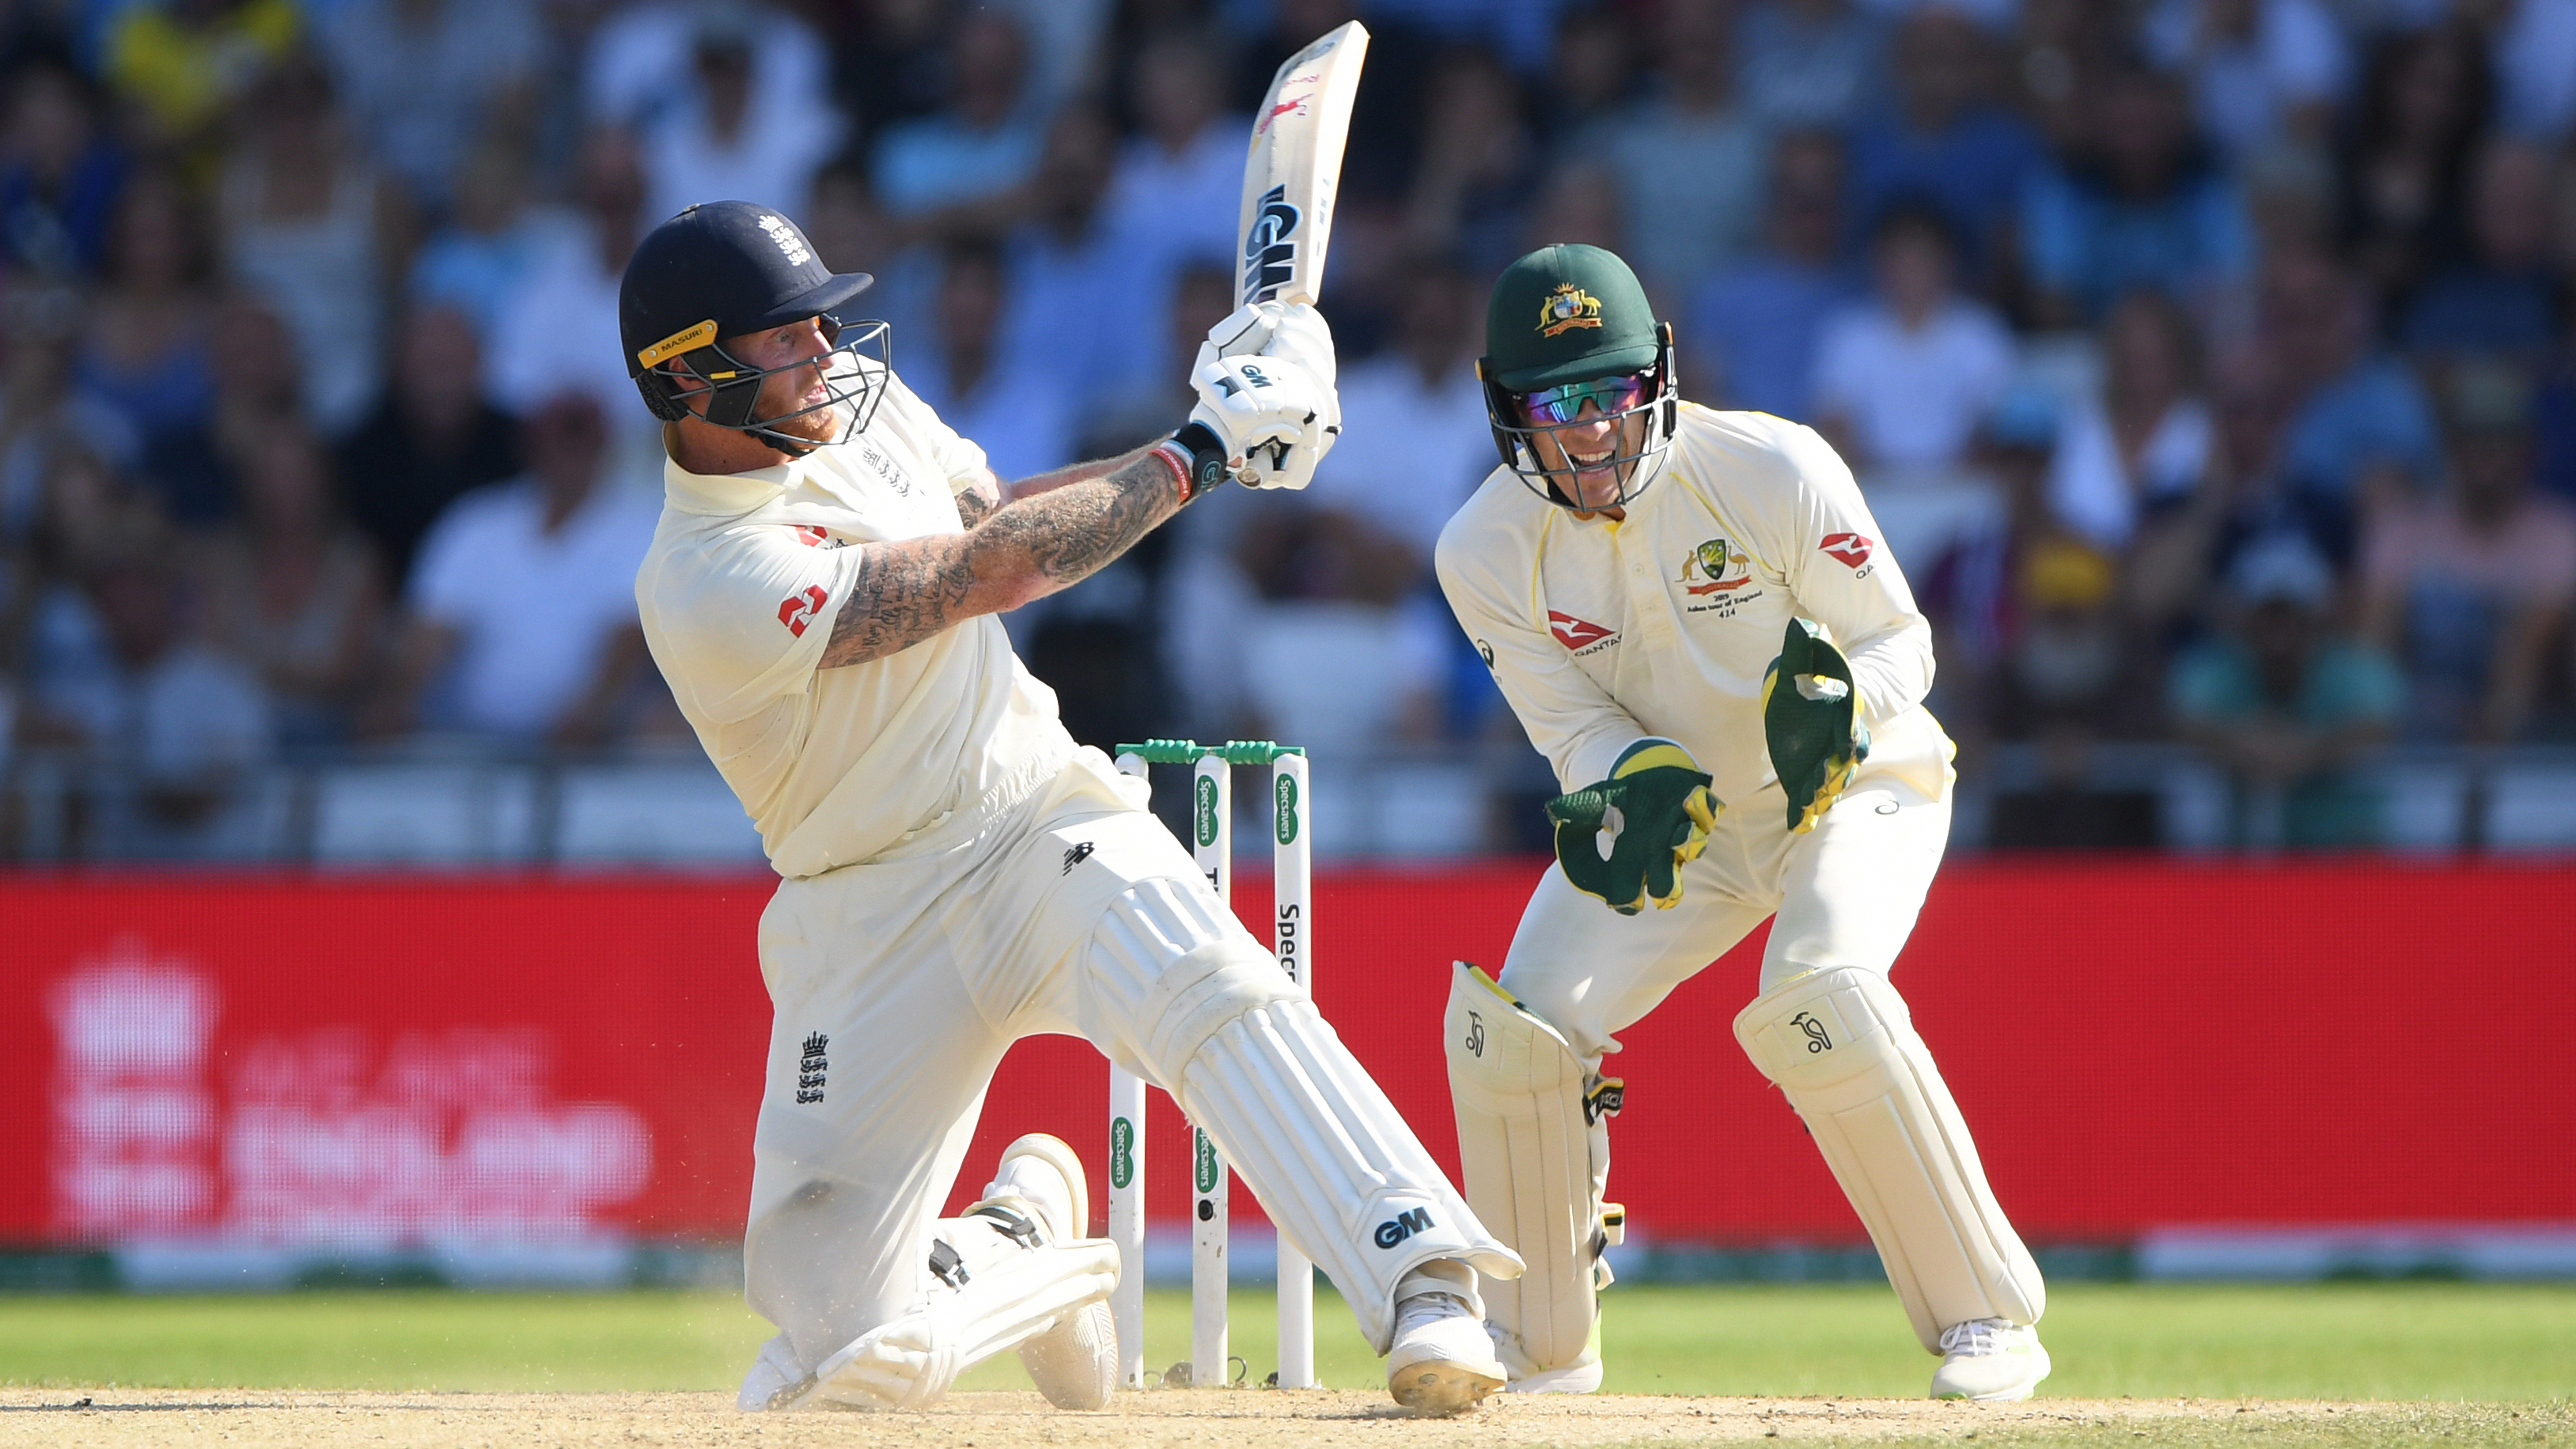 Stokes plays a remarkable switch hit for six // Getty